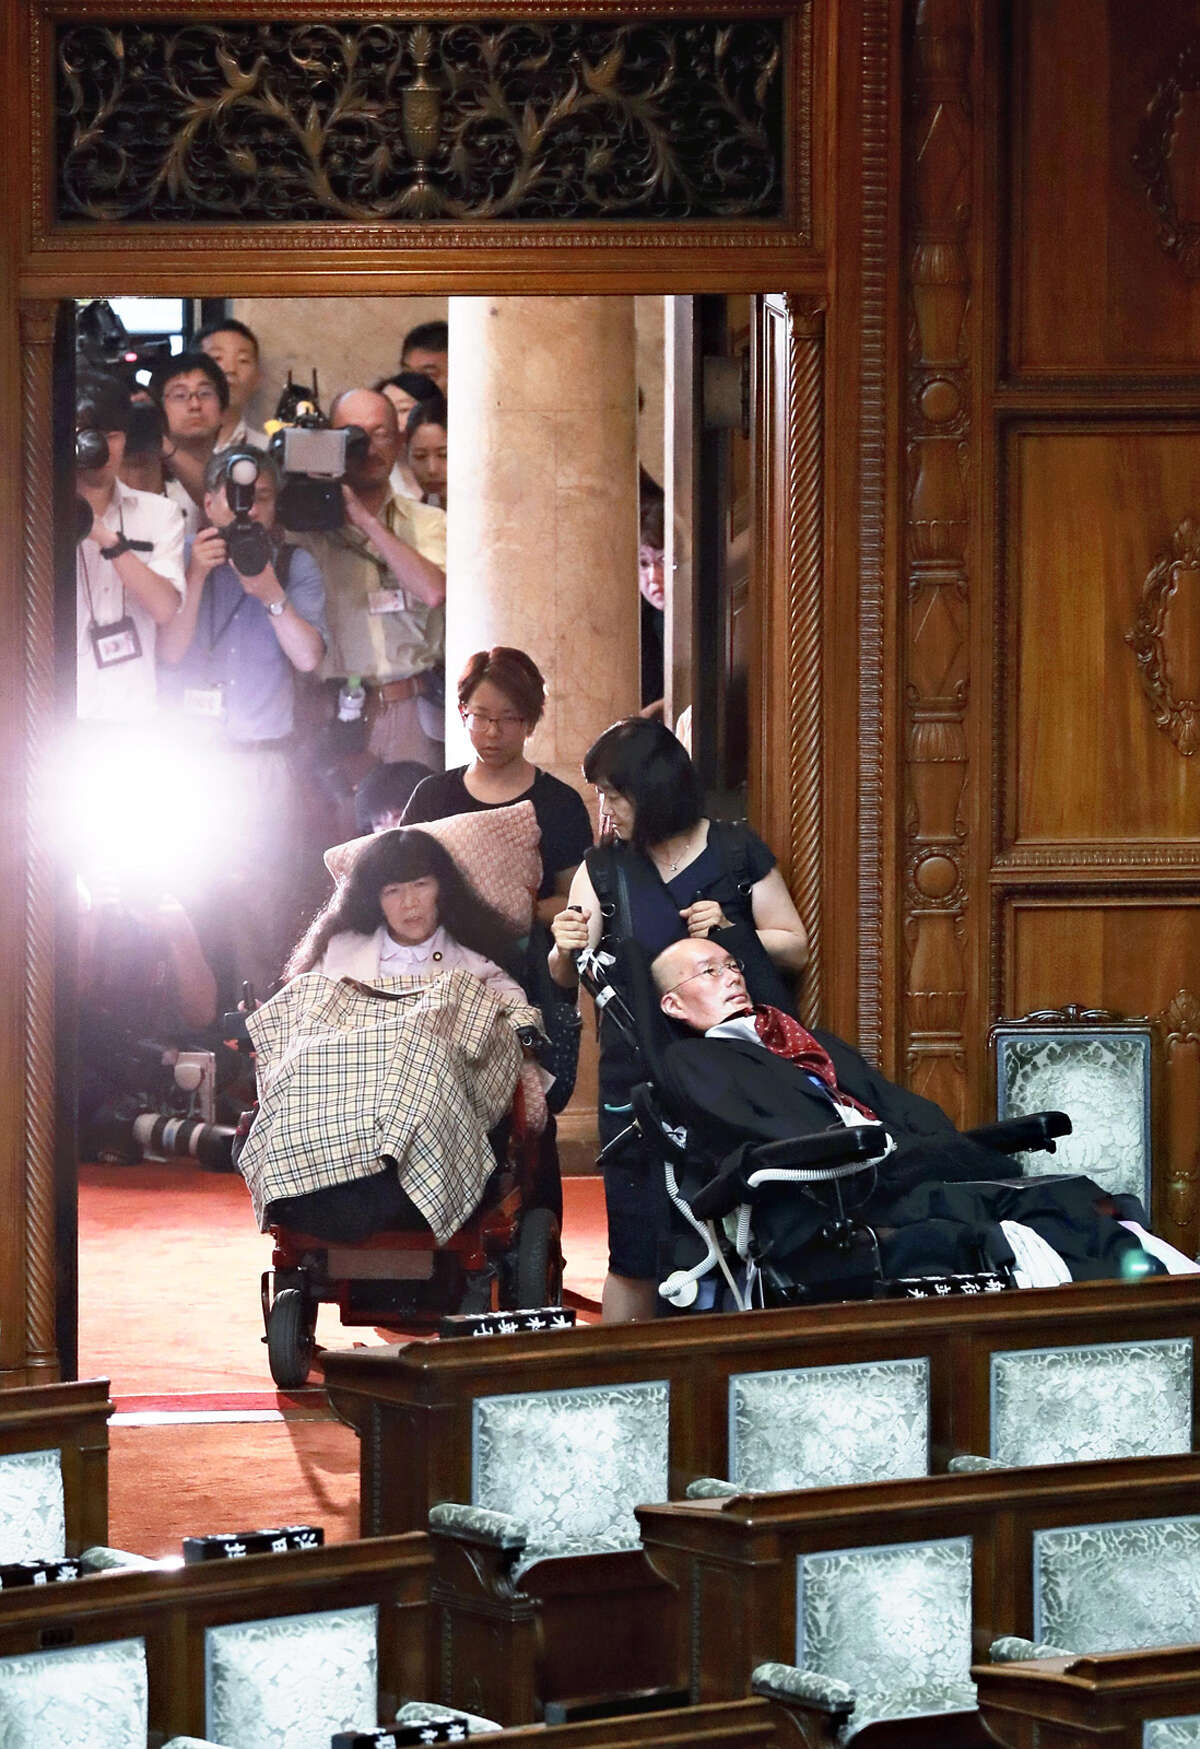 Sitting in wheelchairs, newly elected House of Councillors lawmakers Eiko Kimura, left, and Yasuhiko Funago enter the Diet chamber Thursday.